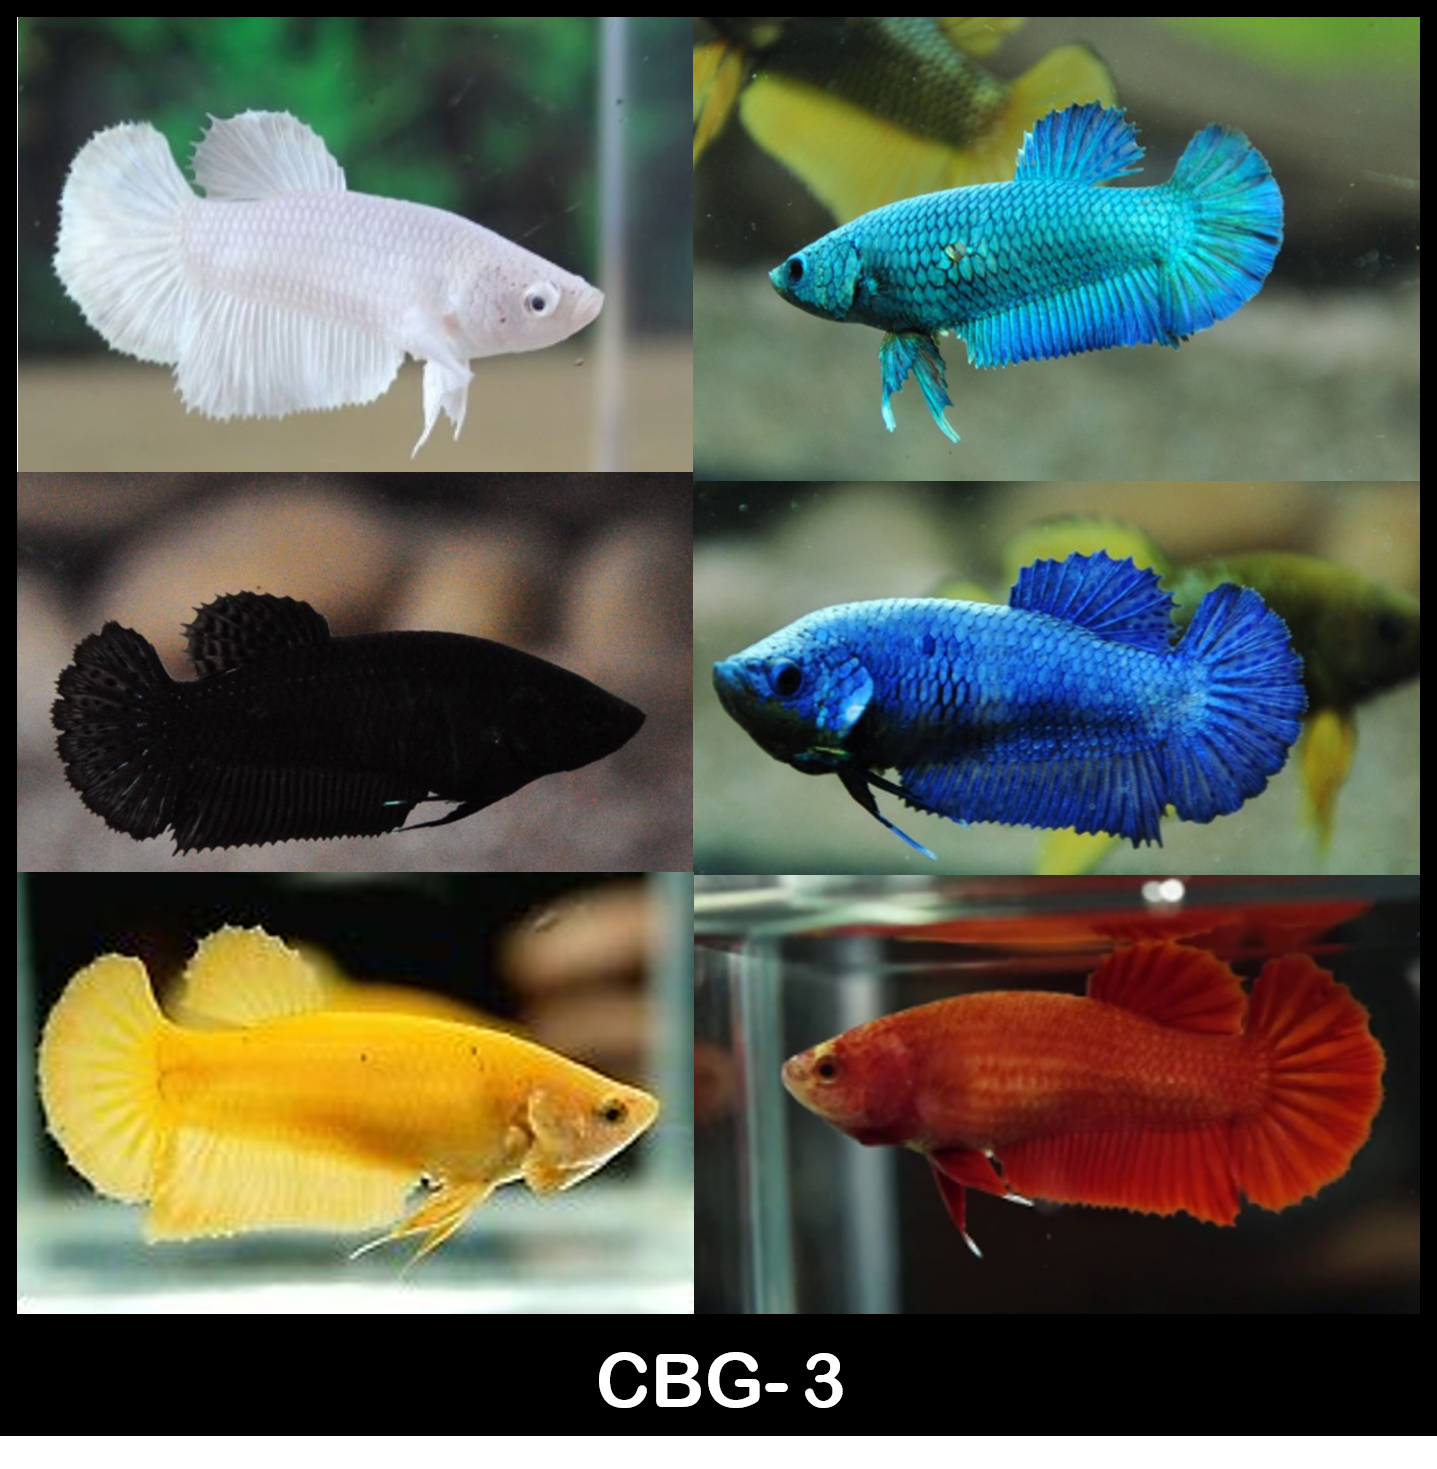 (CBG-03) Mixed solid colors Plakat Female Betta Buy 4 Get 1 Free $60,  Buy 1 for $15